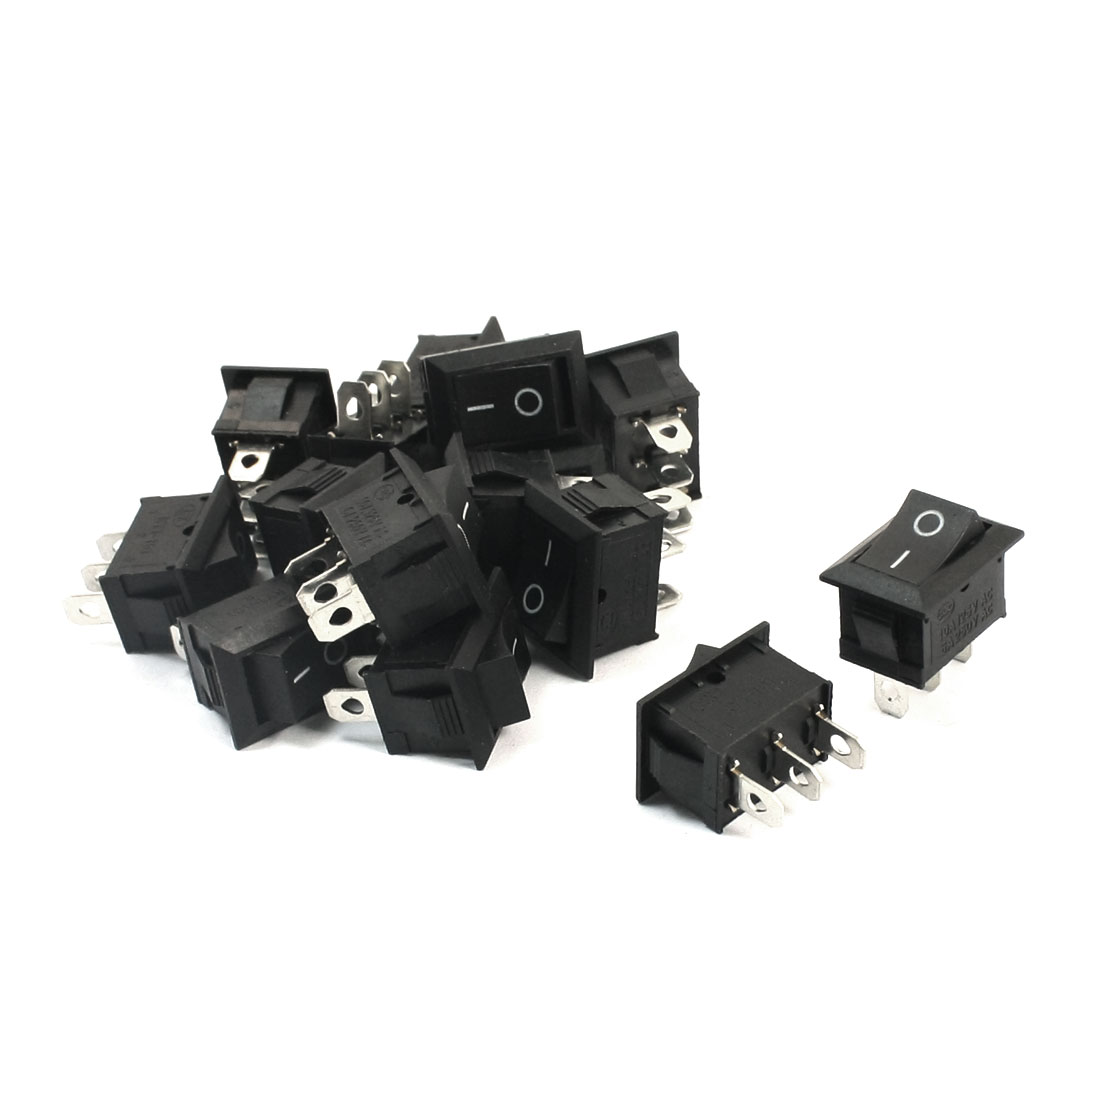 15Pcs SPDT 2 Position ON/OFF 3 Soldering Pin Snap In Black Button Rectangle Boat Rocker Switch AC250V 6A AC125V 10A 15mmx21mm